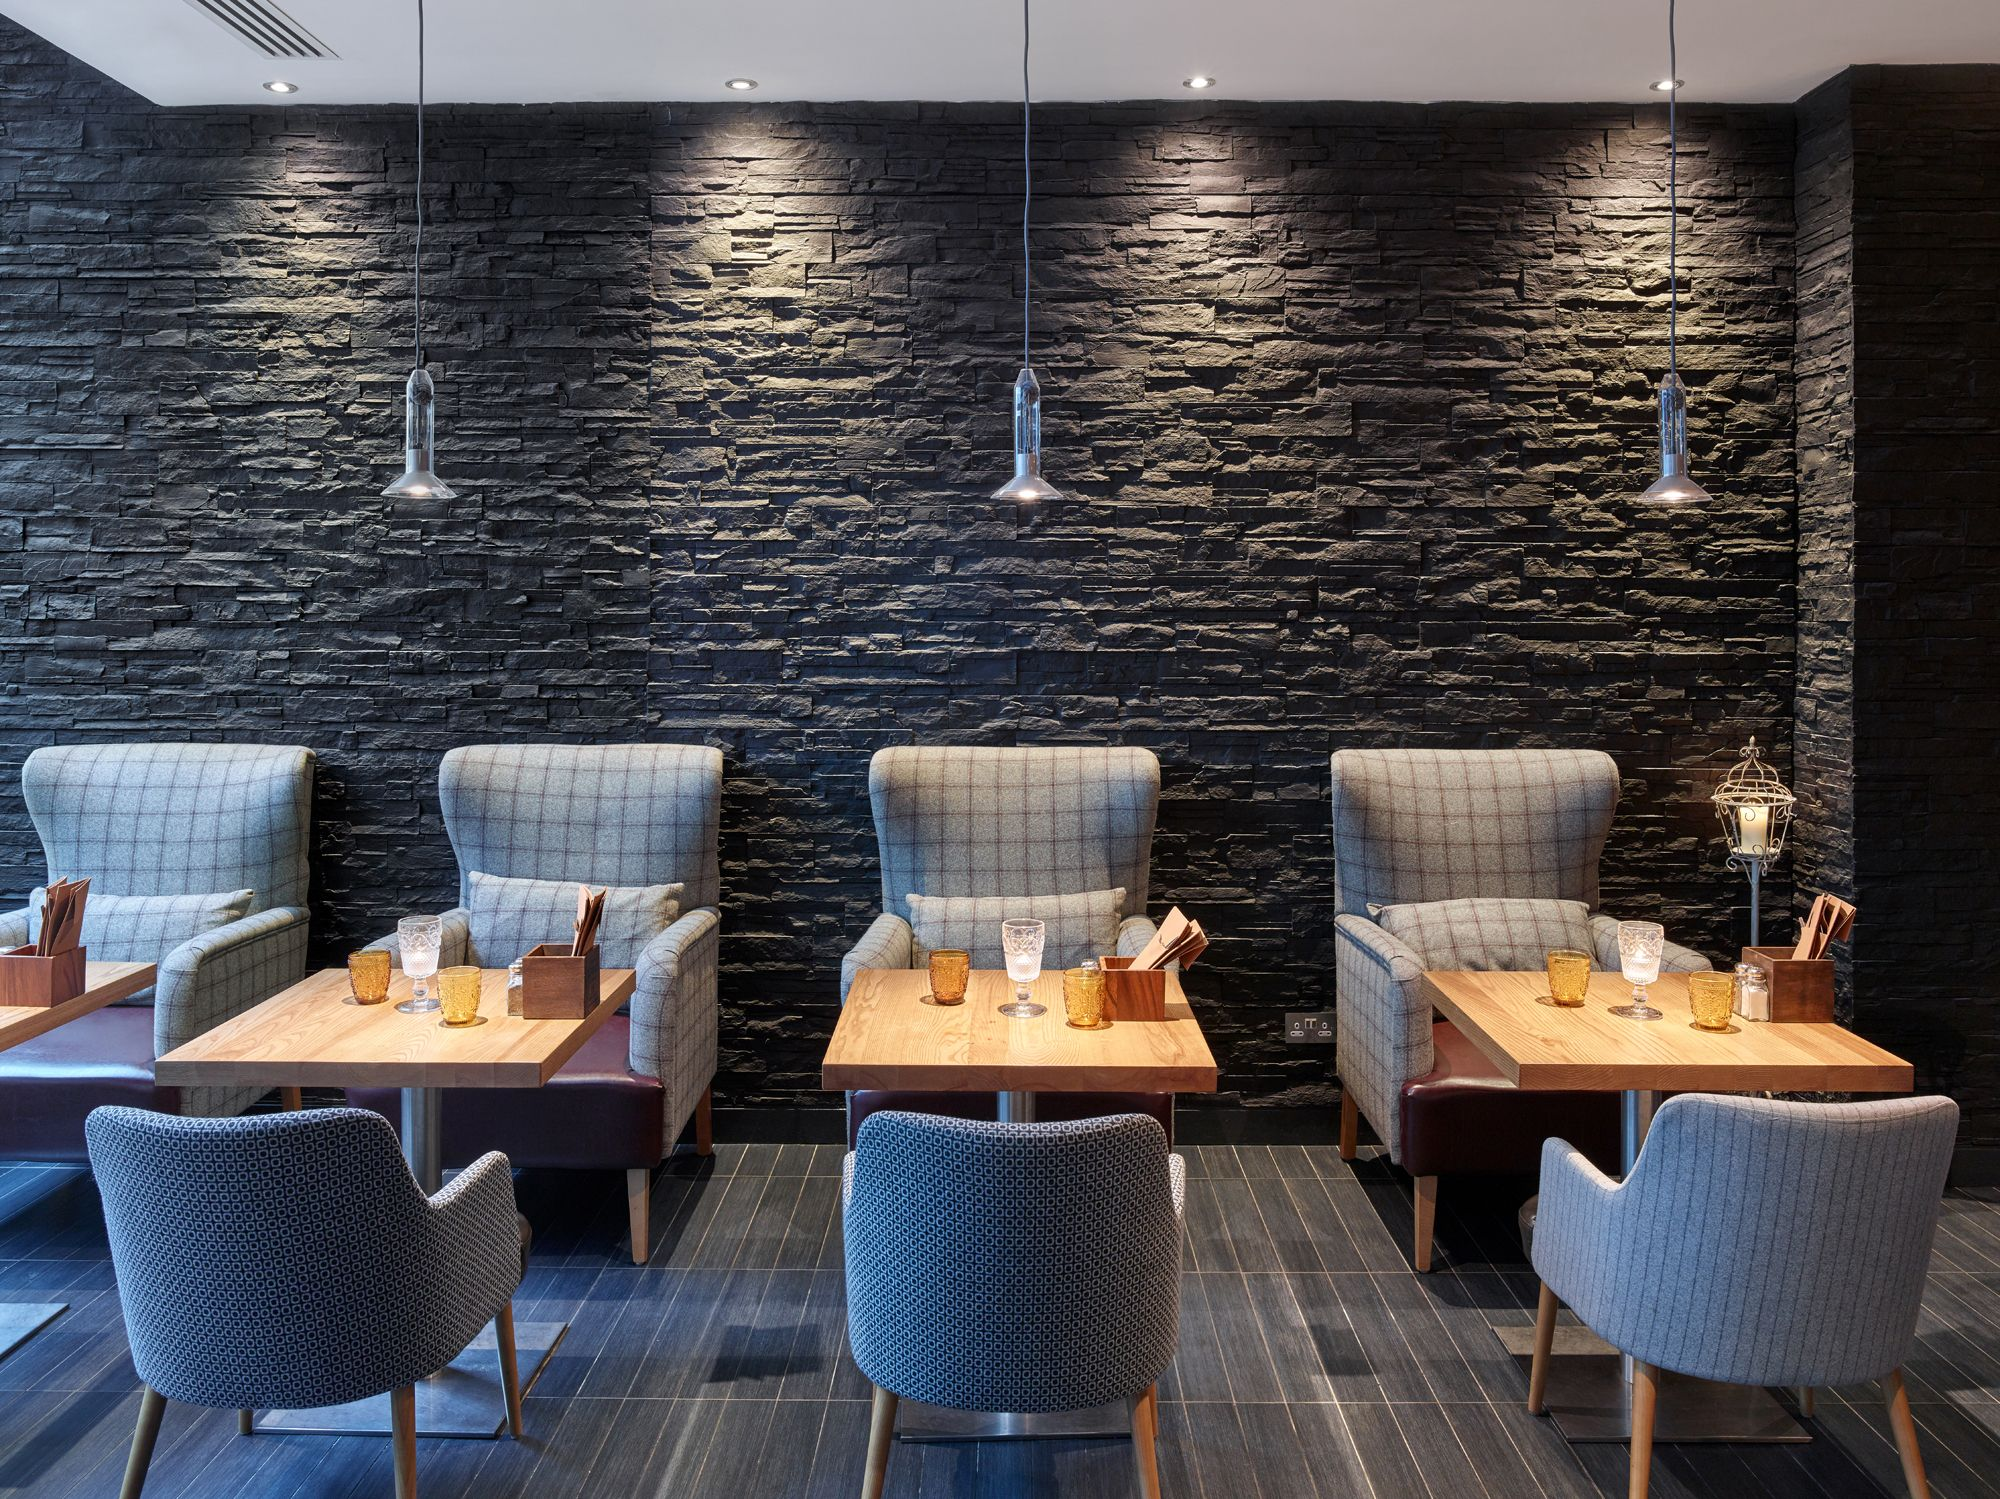 Wall partition contractor malaysia building materials - Interior decorative stone wall panels ...